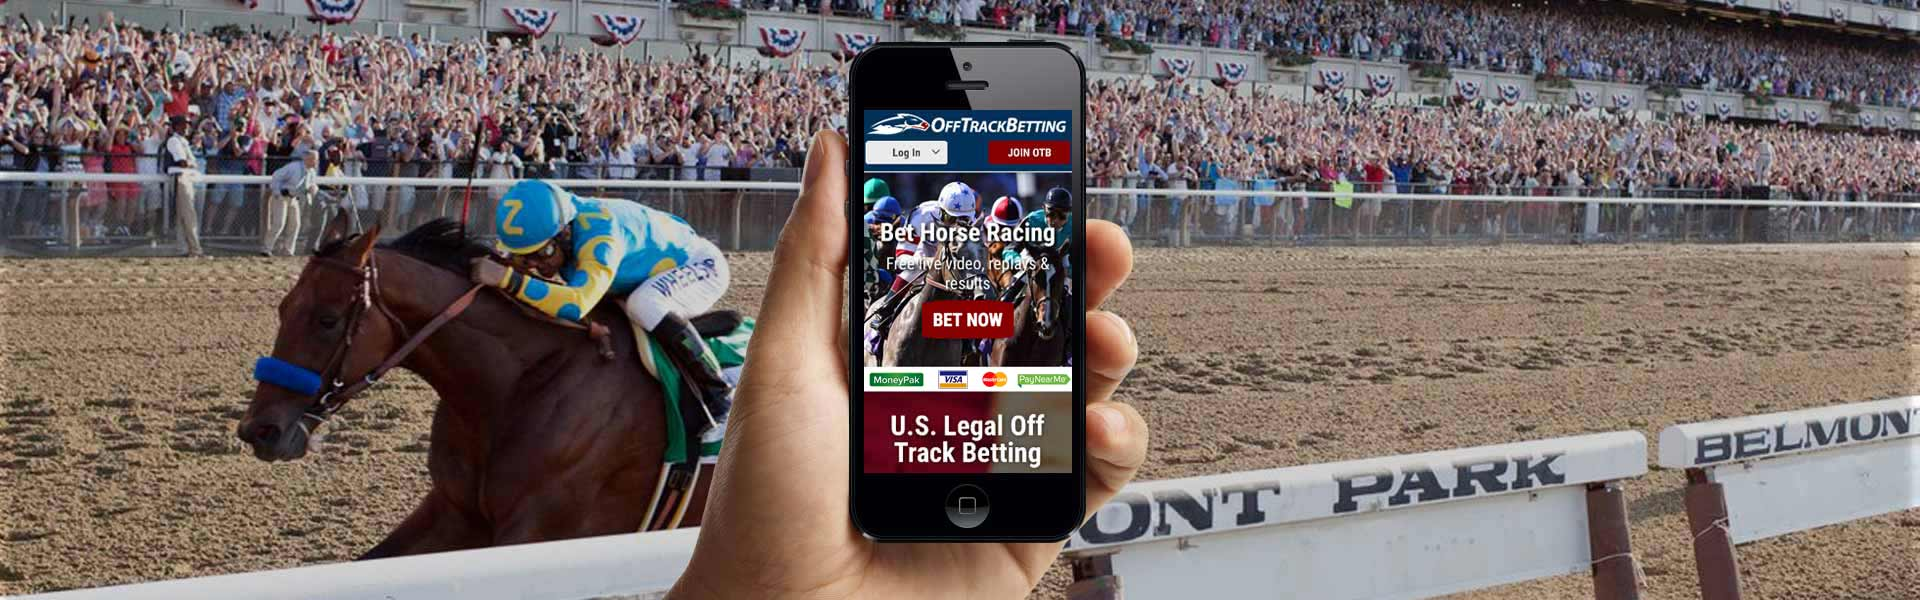 Horse Betting Online with OTB